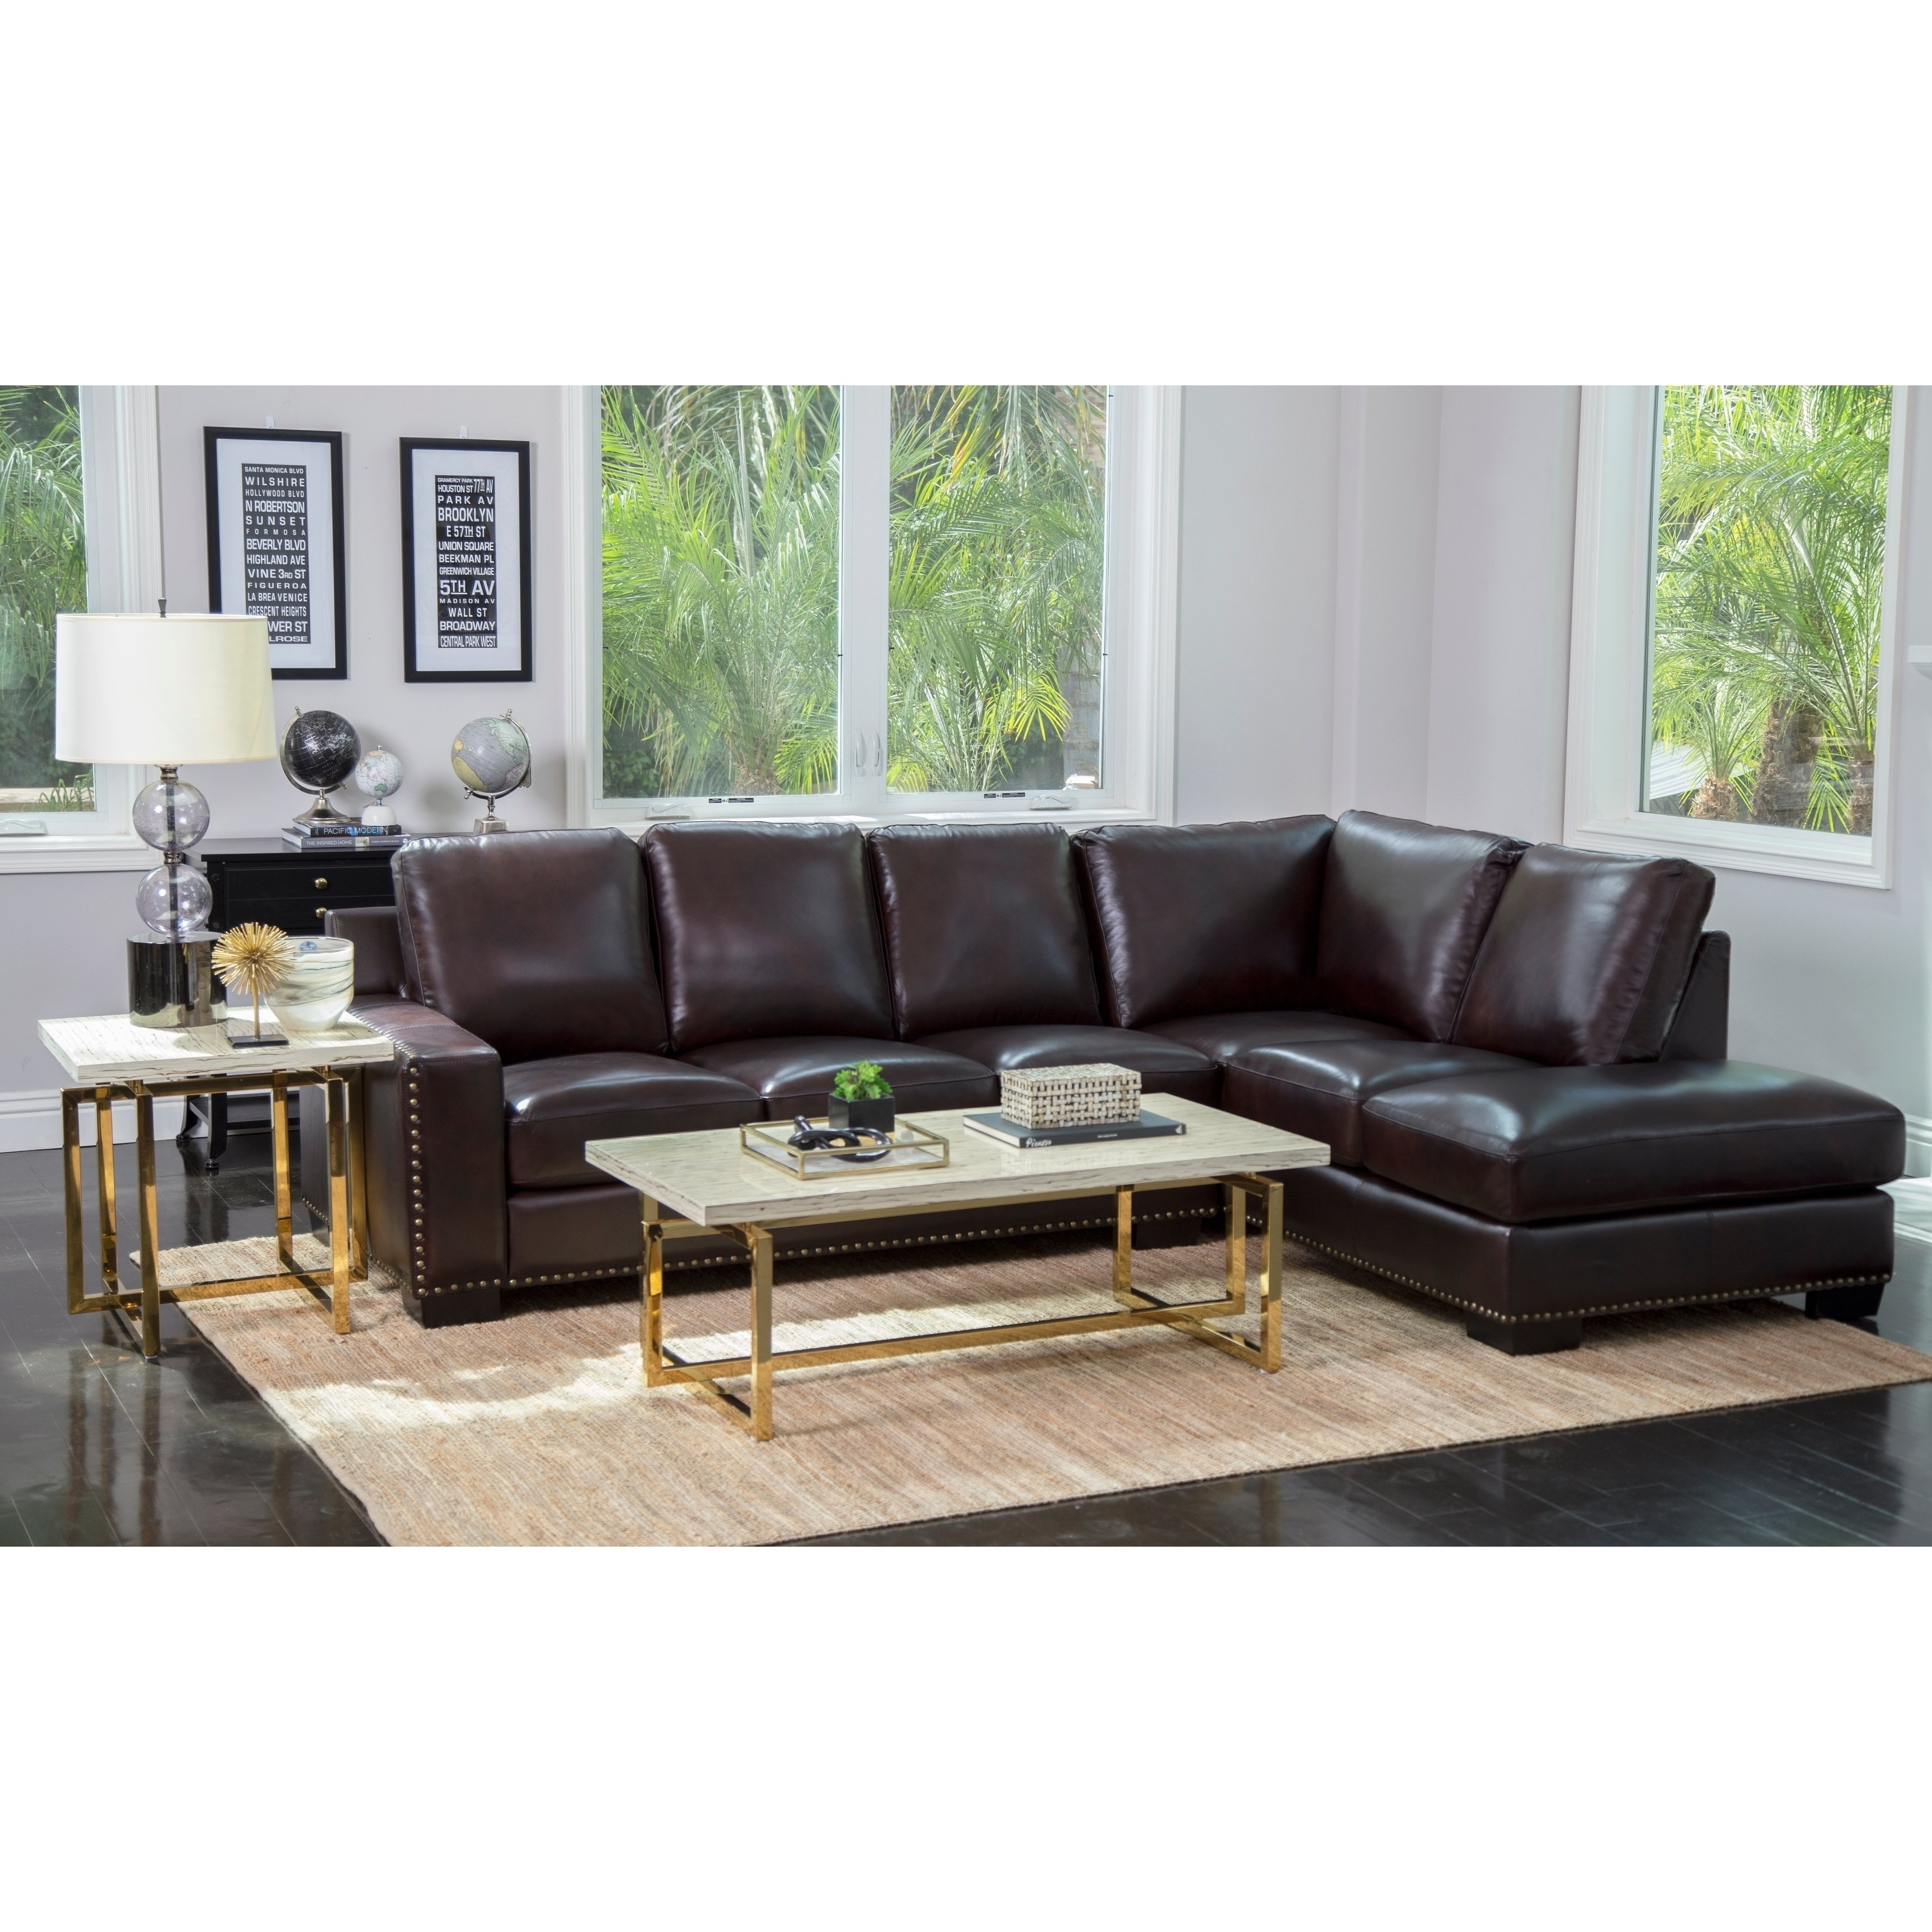 Shop Abbyson Monaco Brown Top Grain Leather Sectional Sofa – On Sale Regarding Adeline 3 Piece Sectionals (Image 21 of 25)